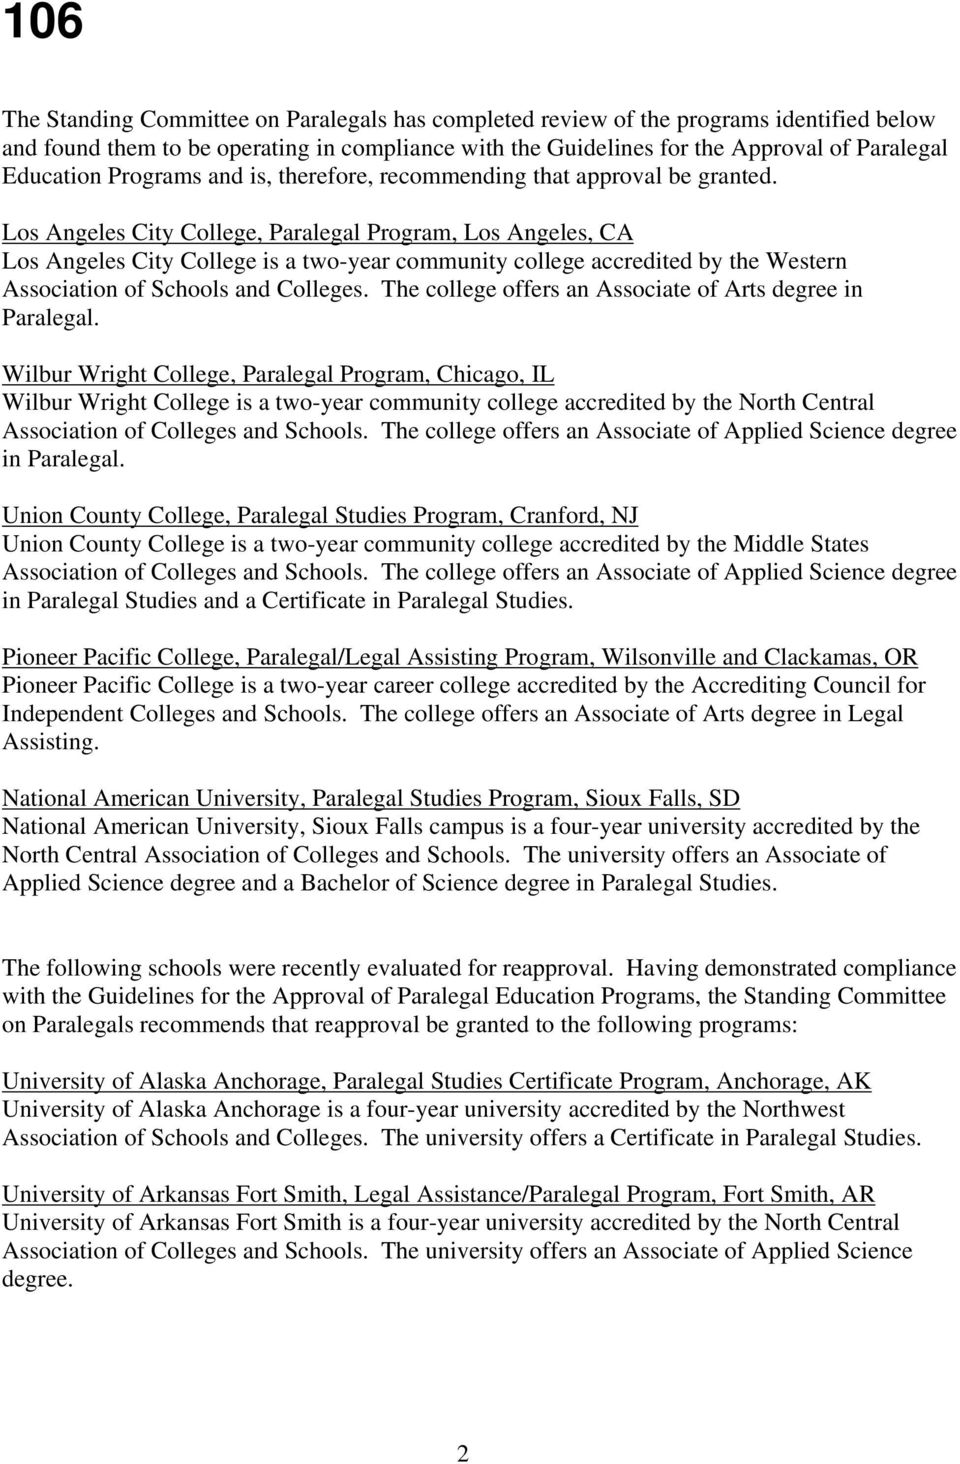 Los Angeles City College, Paralegal Program, Los Angeles, CA Los Angeles City College is a two-year community college accredited by the Western Association of Schools and Colleges.